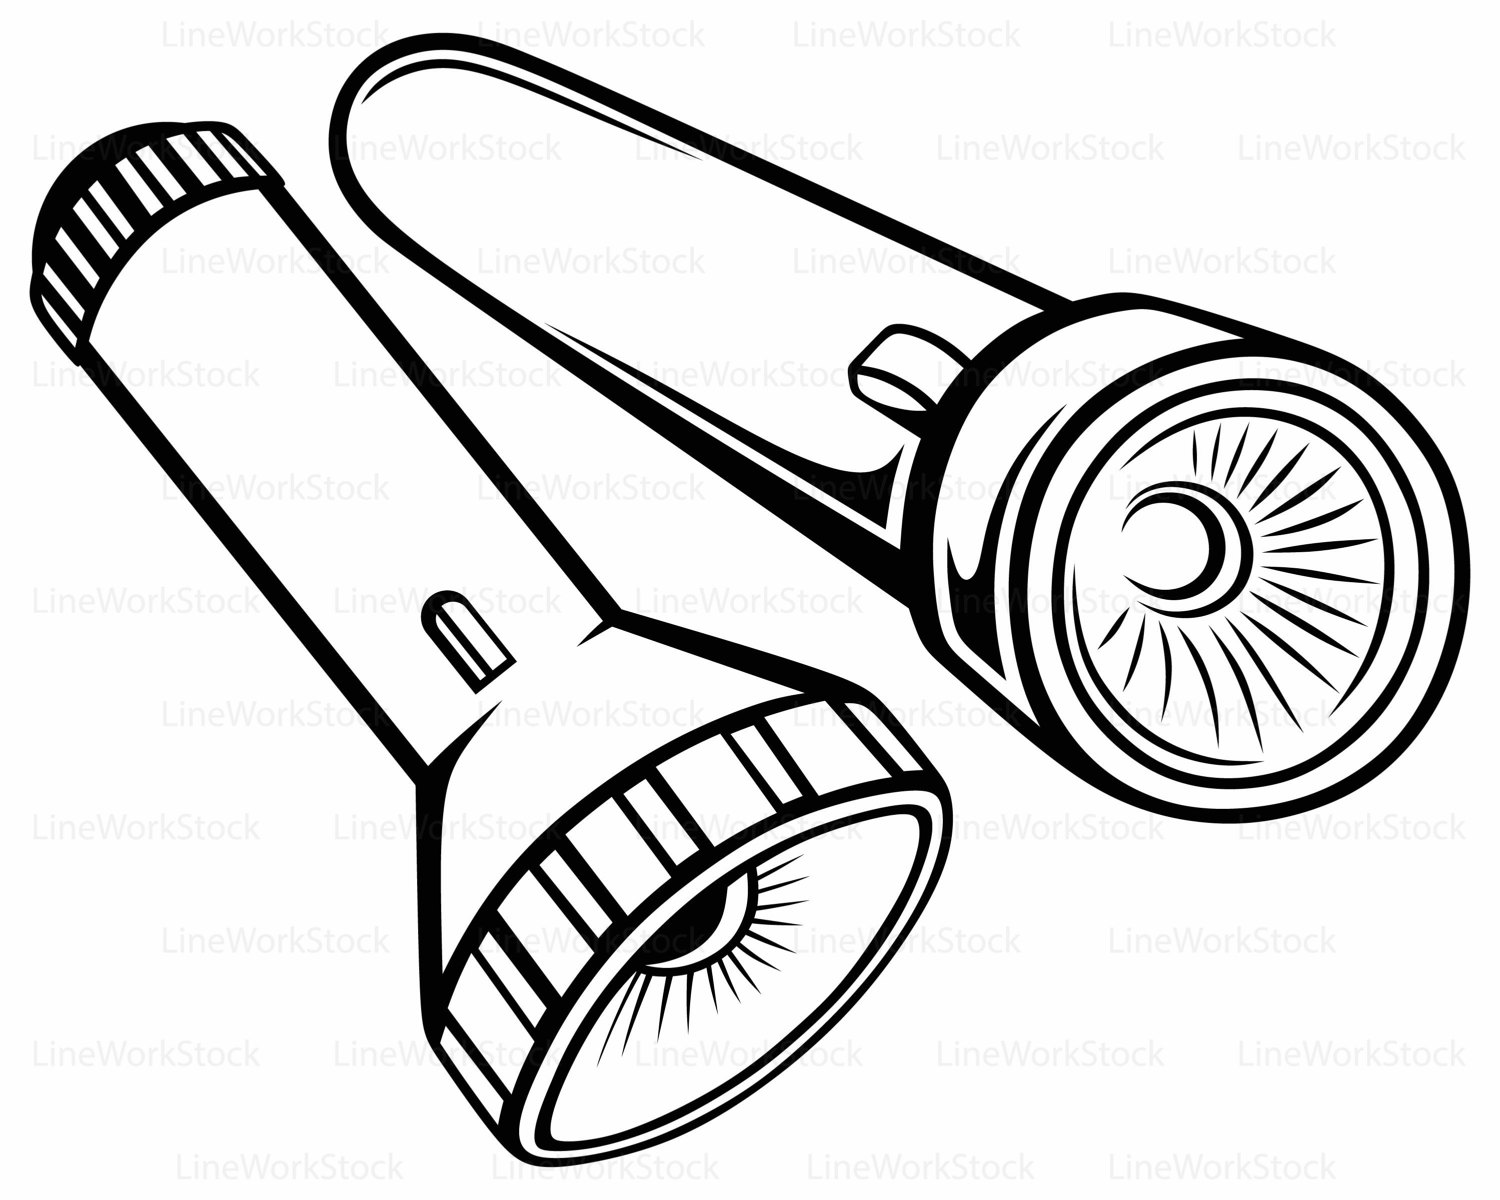 1500x1200 Flashlight Svg,flashlight Clipart,flashlight Svg,flashlight